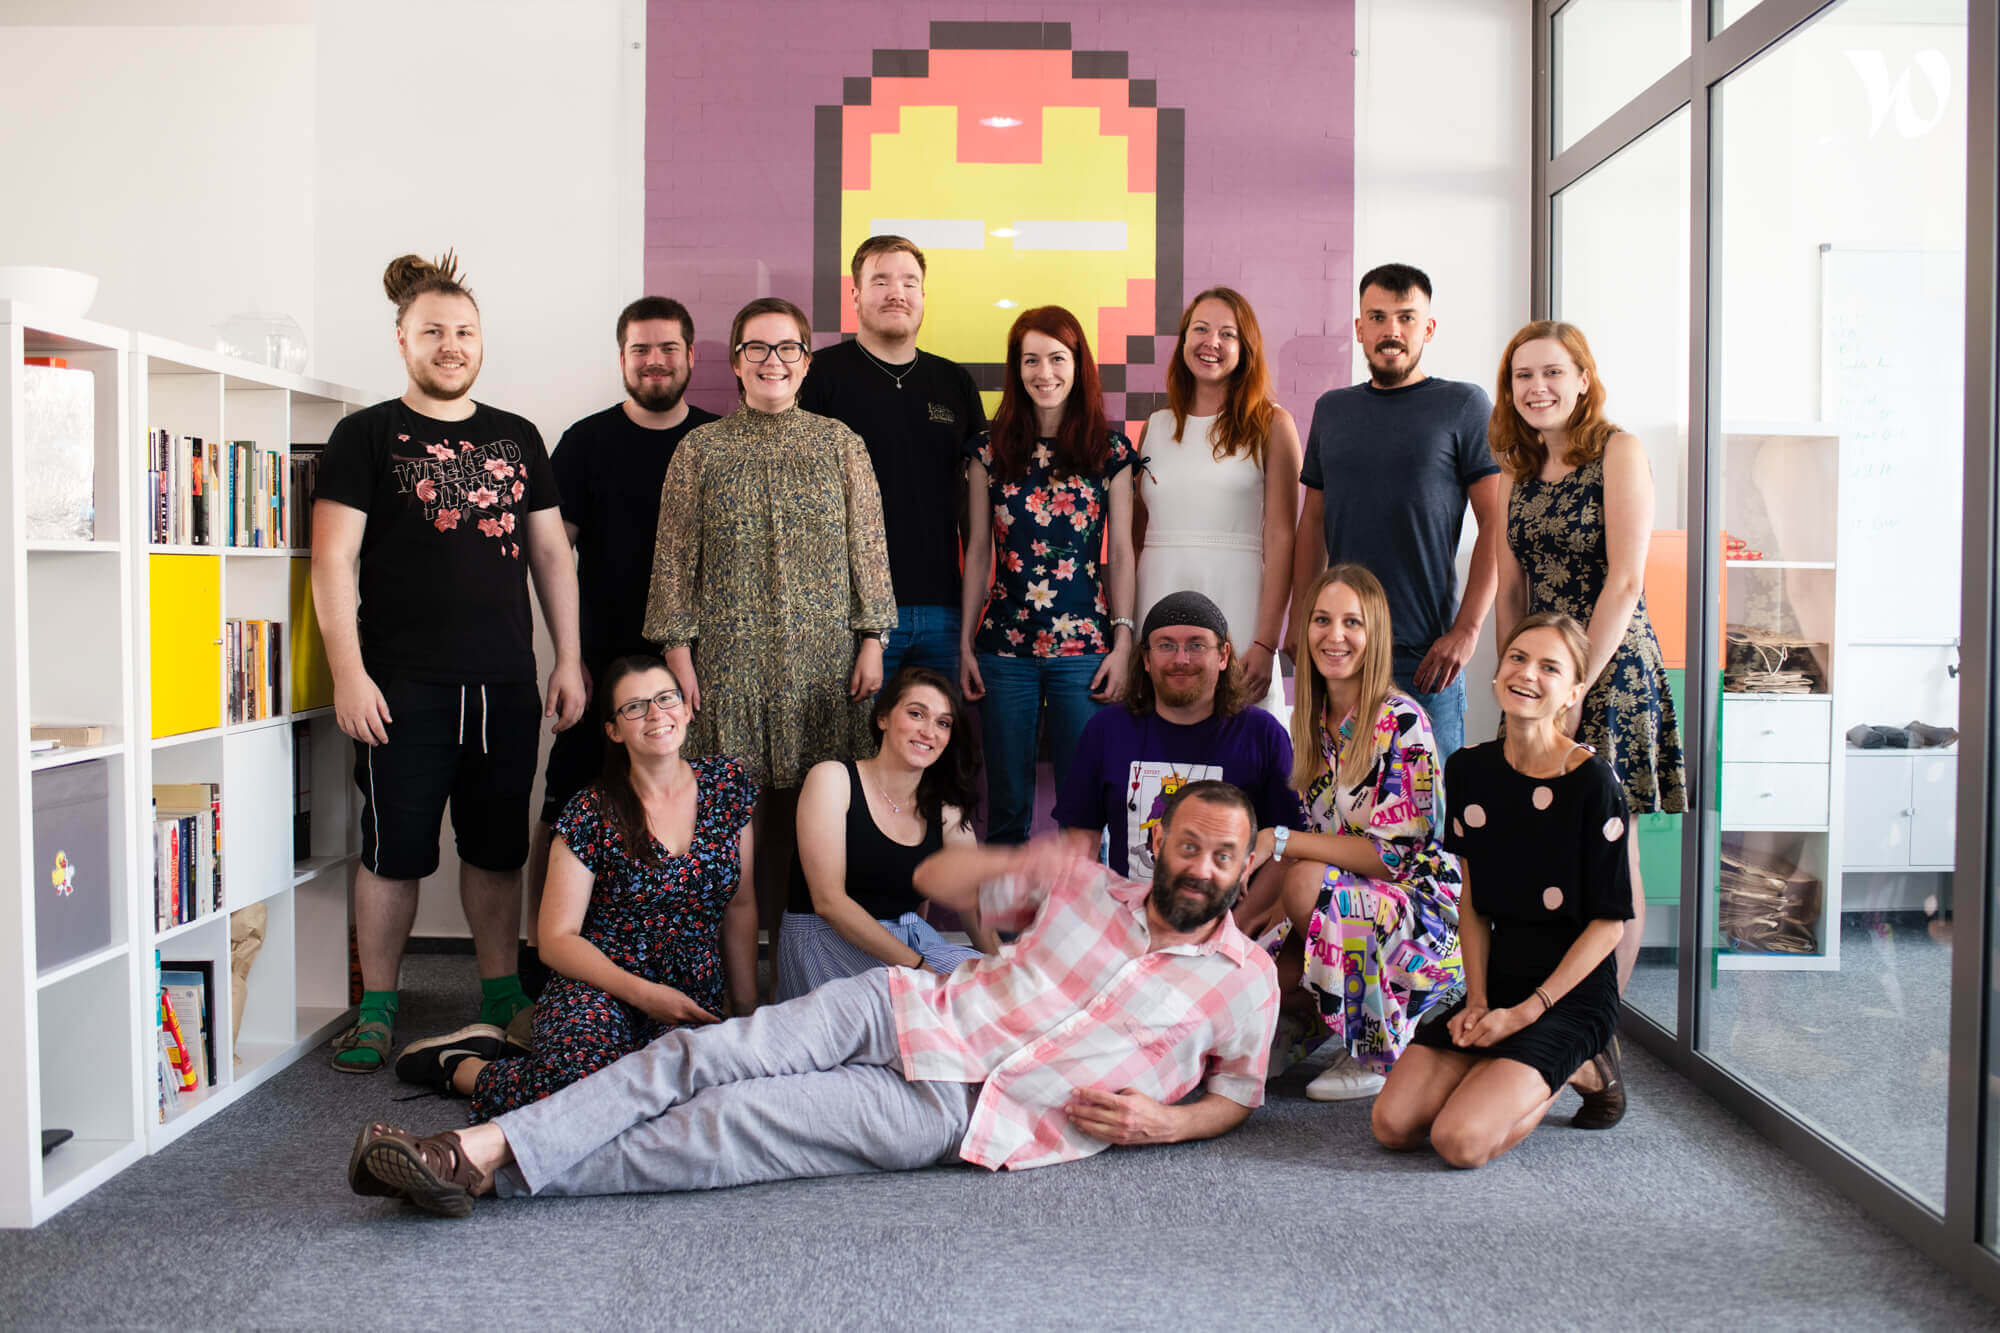 A photo of 14 members of the Runecast team at the Runecast offices in Brno.